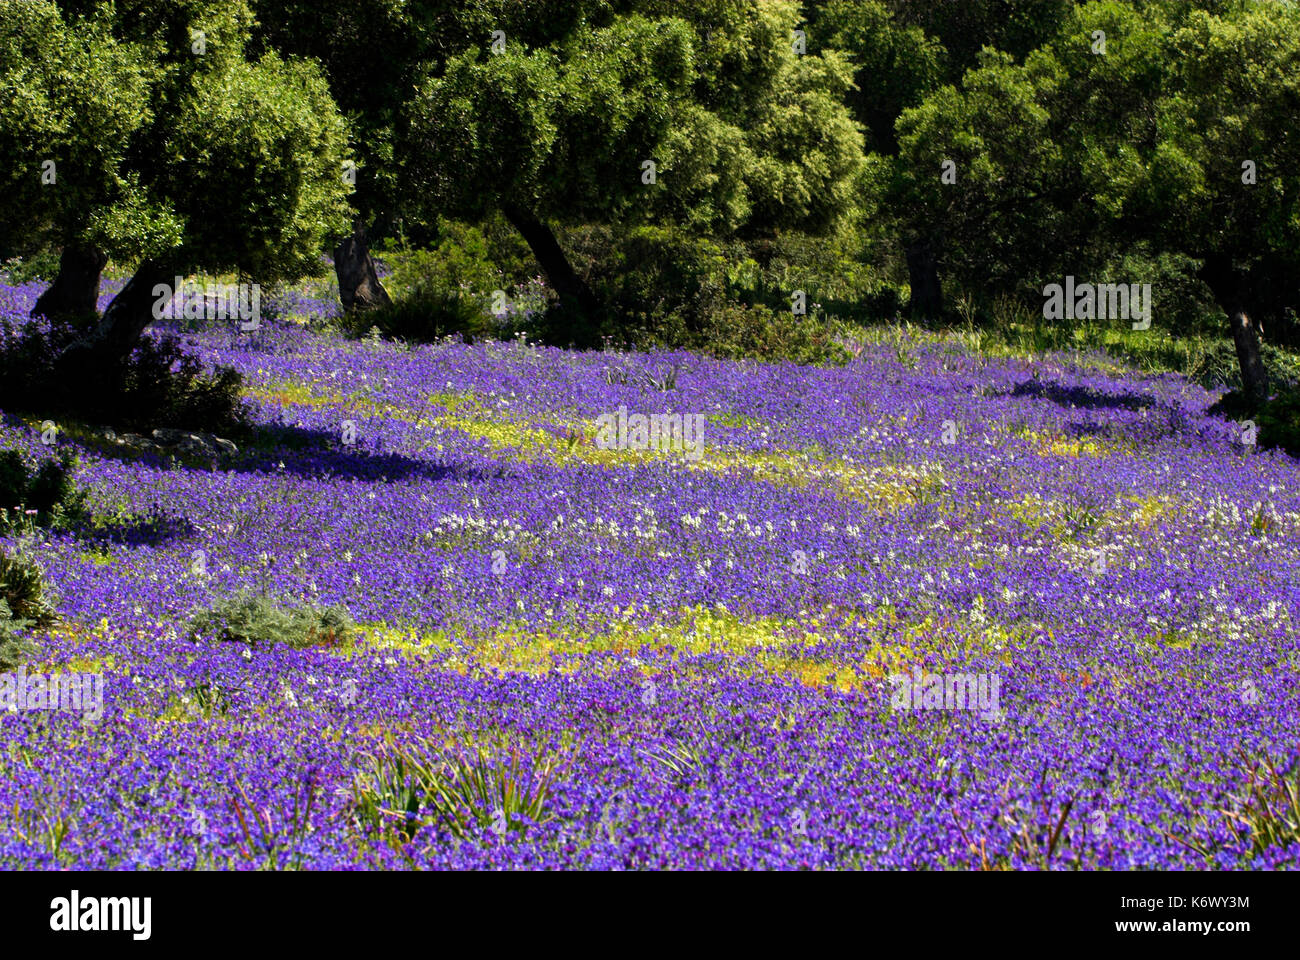 Wild flower meadow andalusia andalucia blue purple flowers cork wild flower meadow andalusia andalucia blue purple flowers cork oak trees mightylinksfo